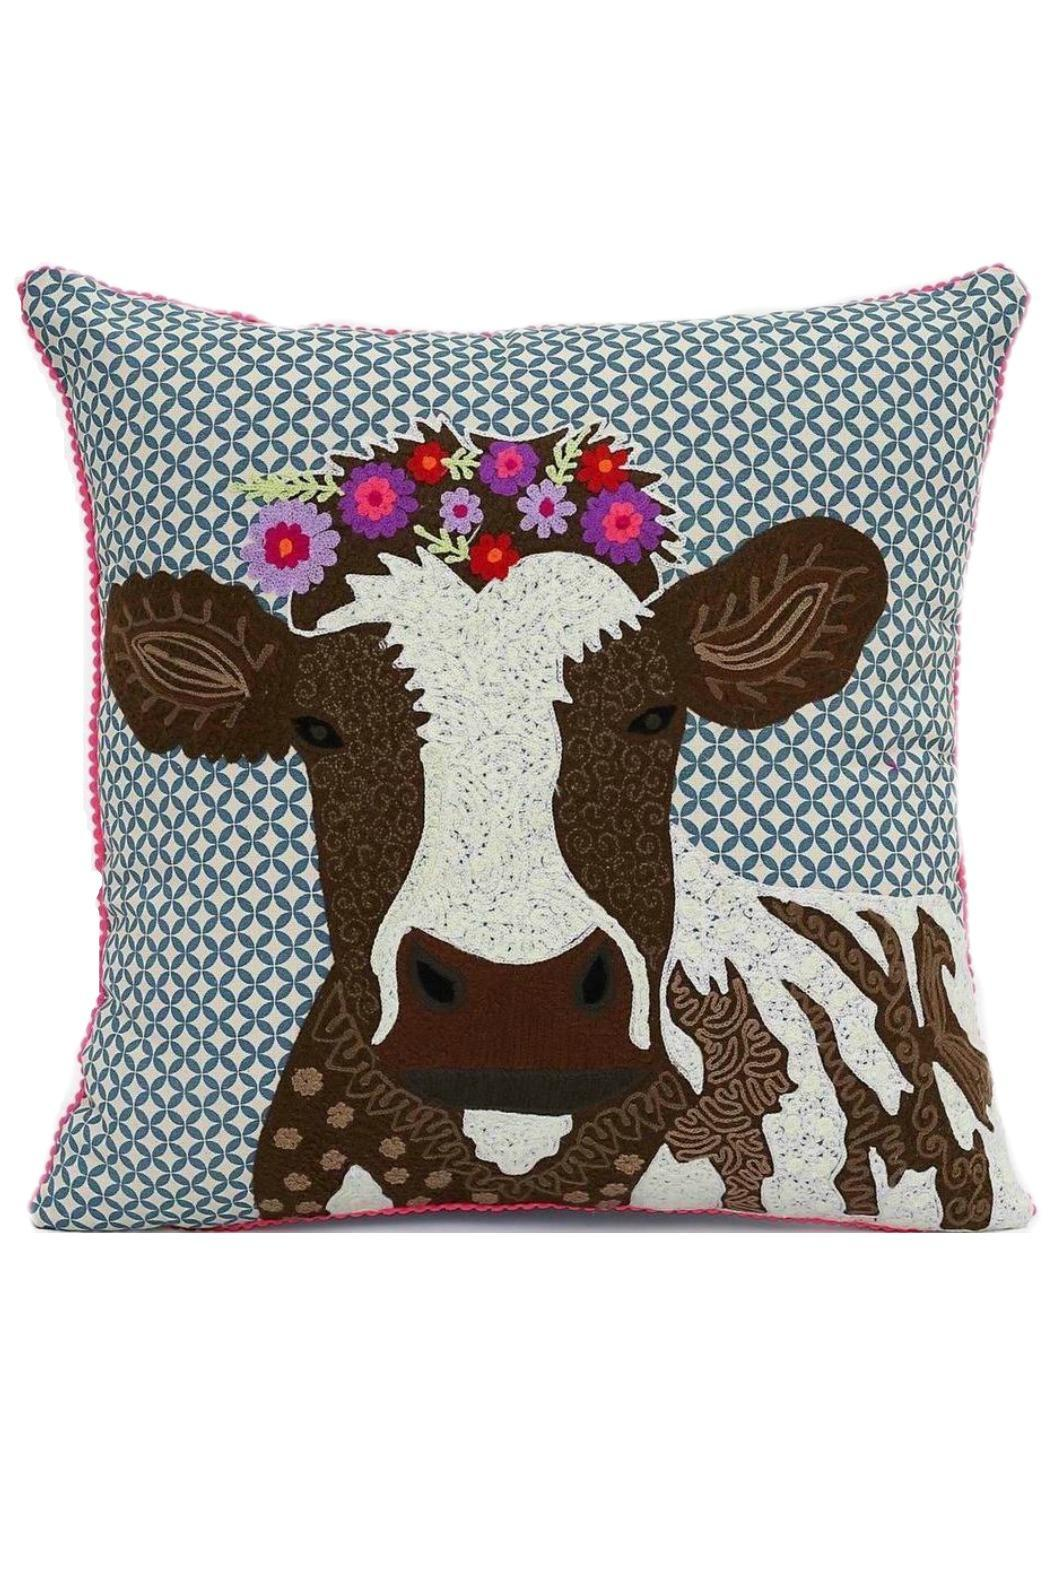 Karma Living Cow Pillow from Maryland by Curlicue ? Shoptiques